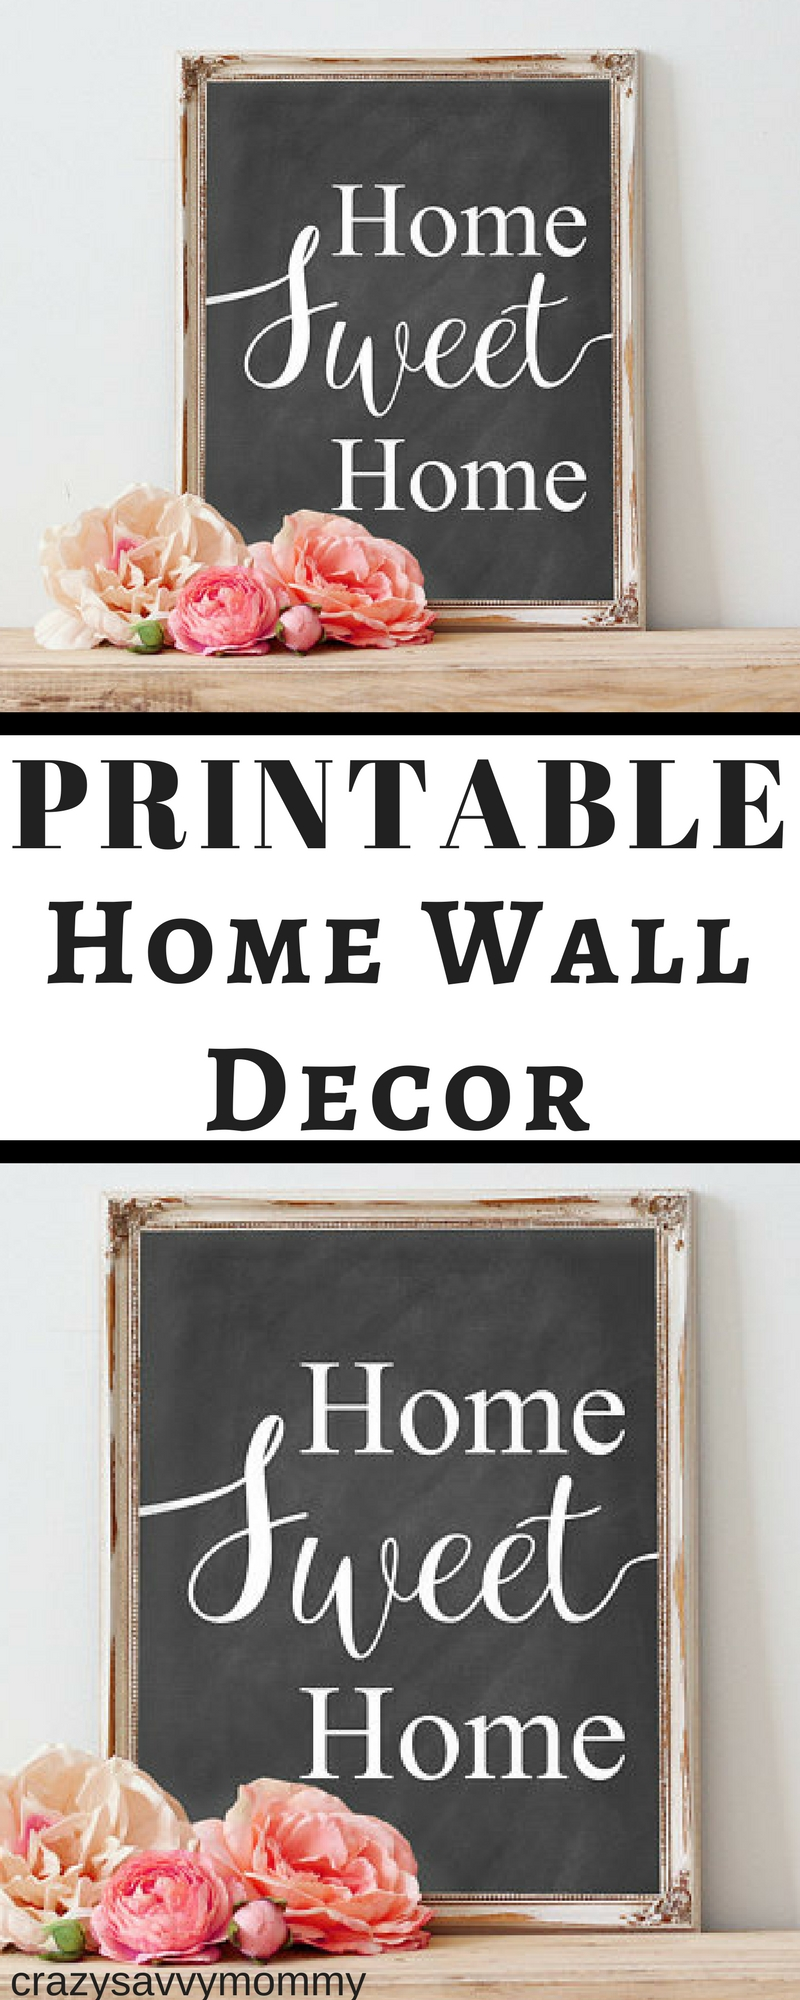 Only $4.49!! Printable Home Wall Decor. Home Sweet Home Chalkboard for Chalkboard Wall Art (Image 15 of 20)